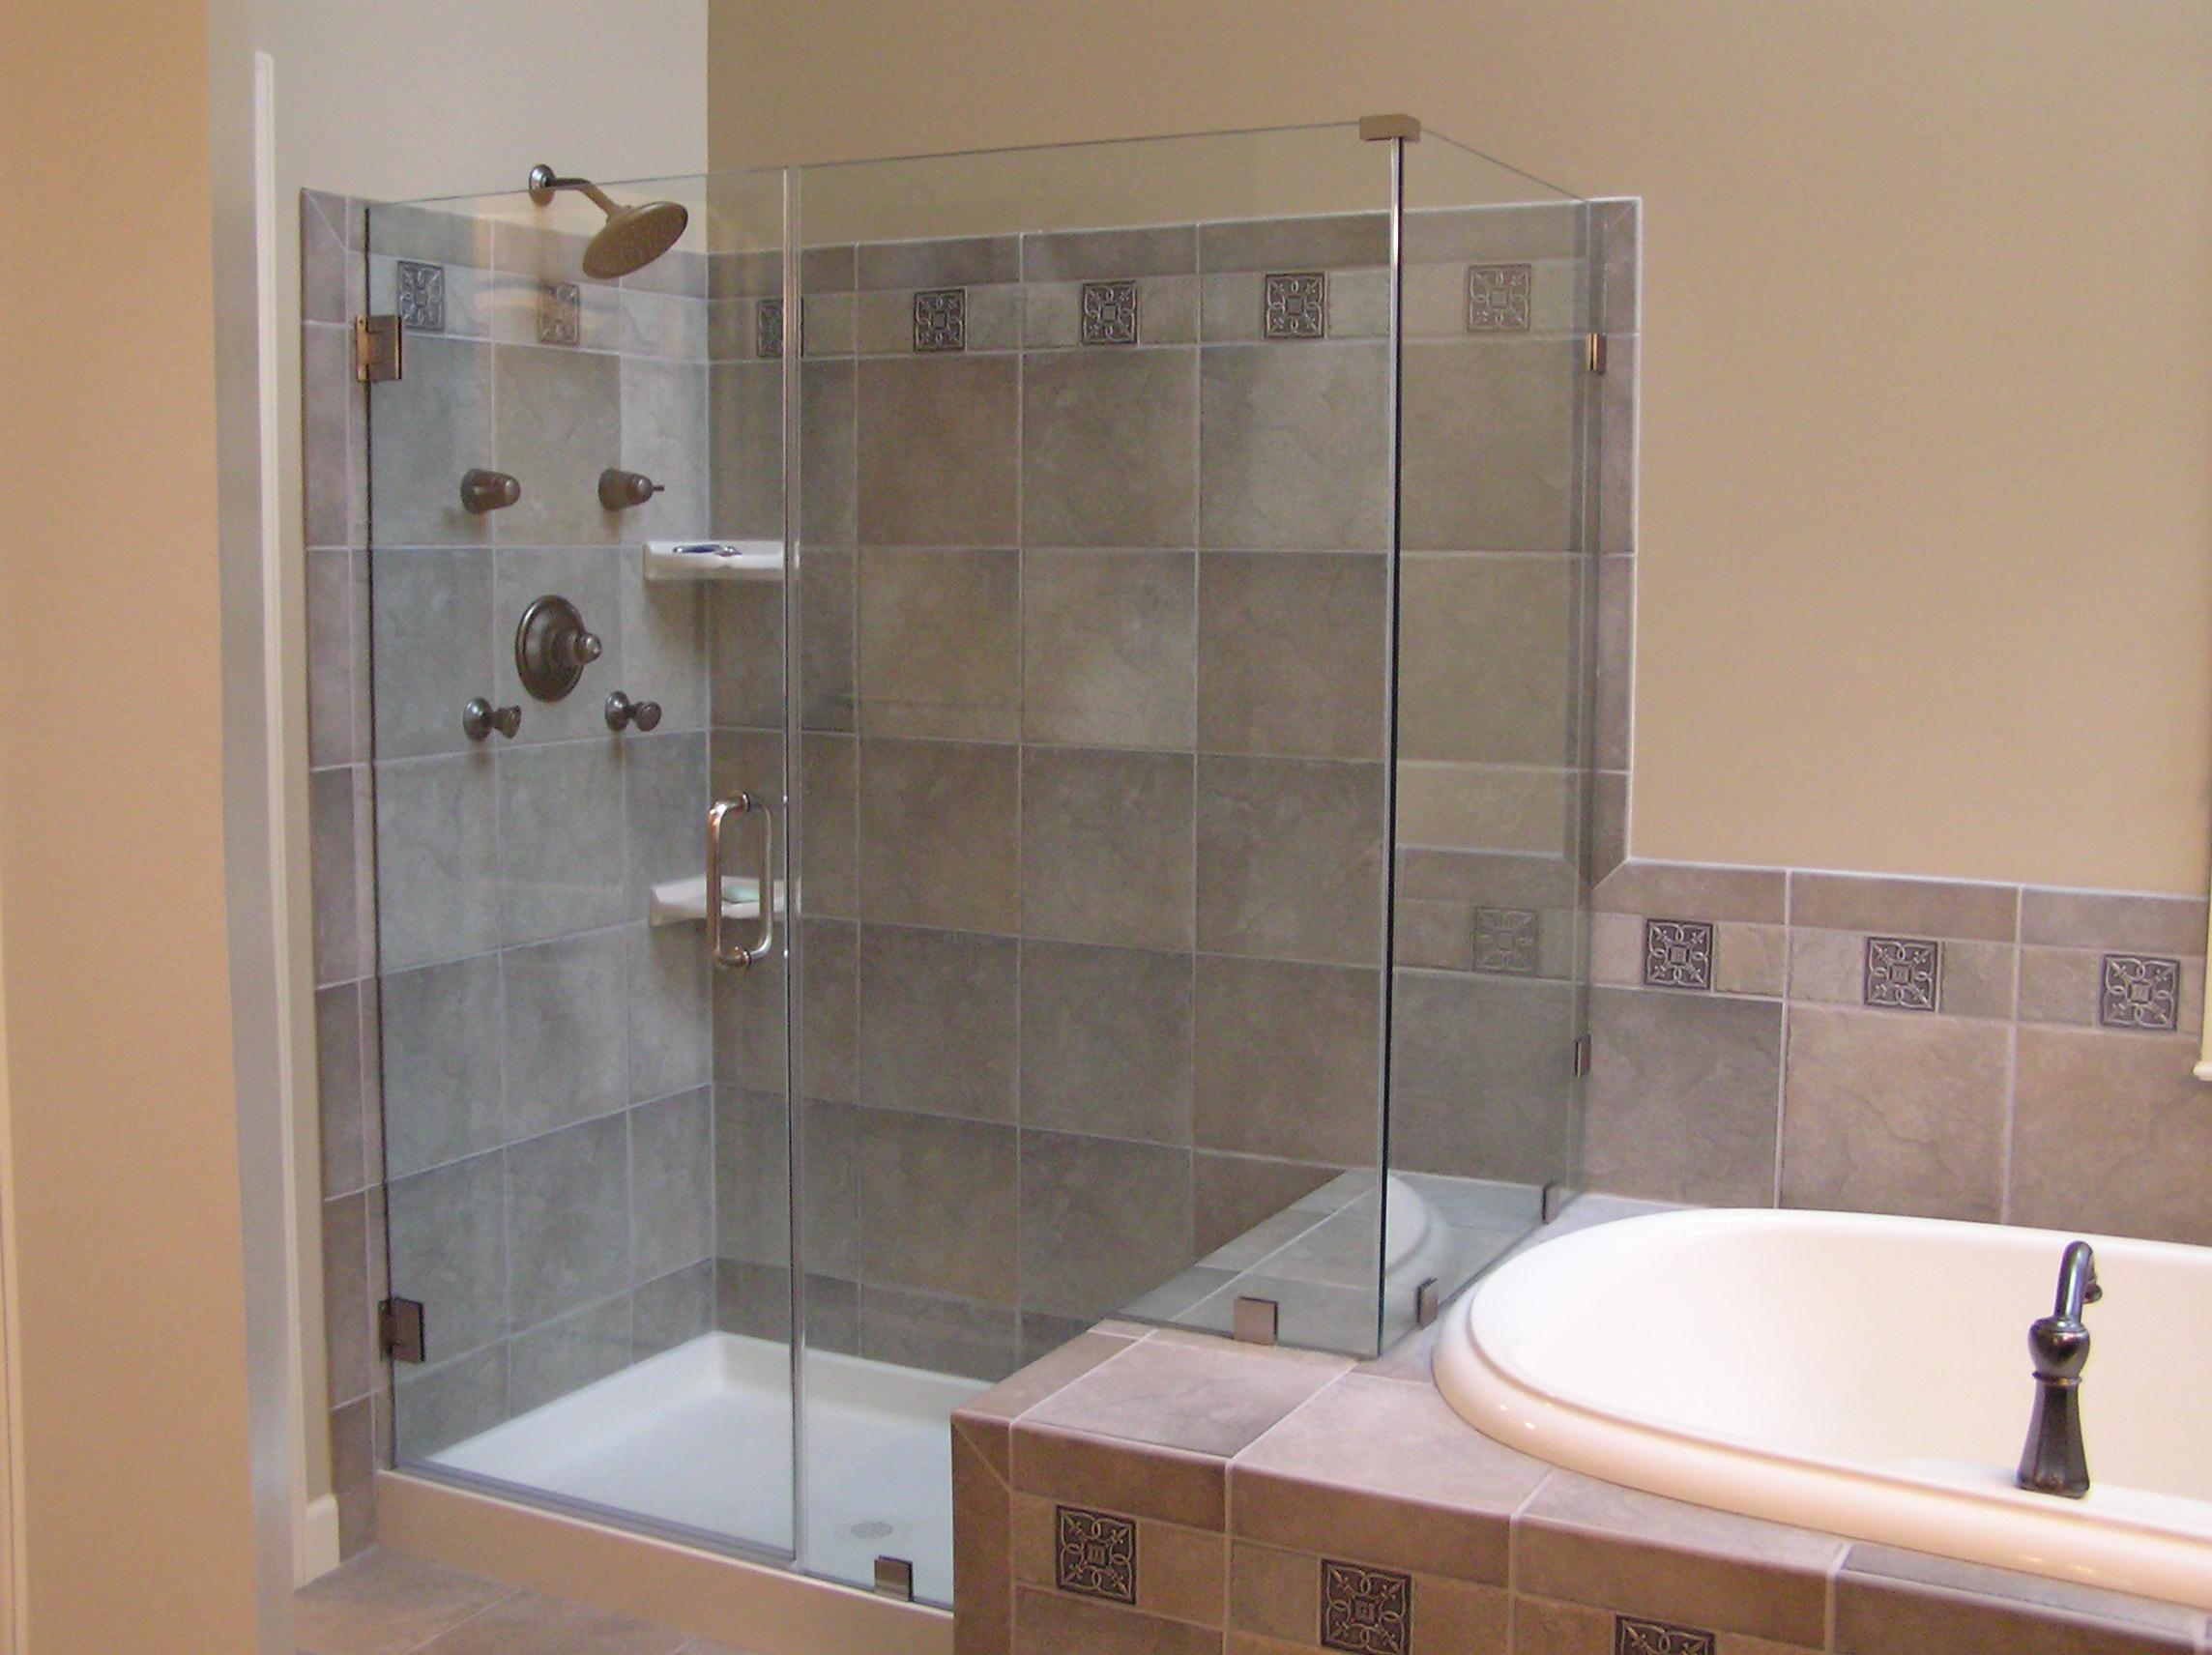 Renovate bathrooms - Bathroom Renovation With New Tiles